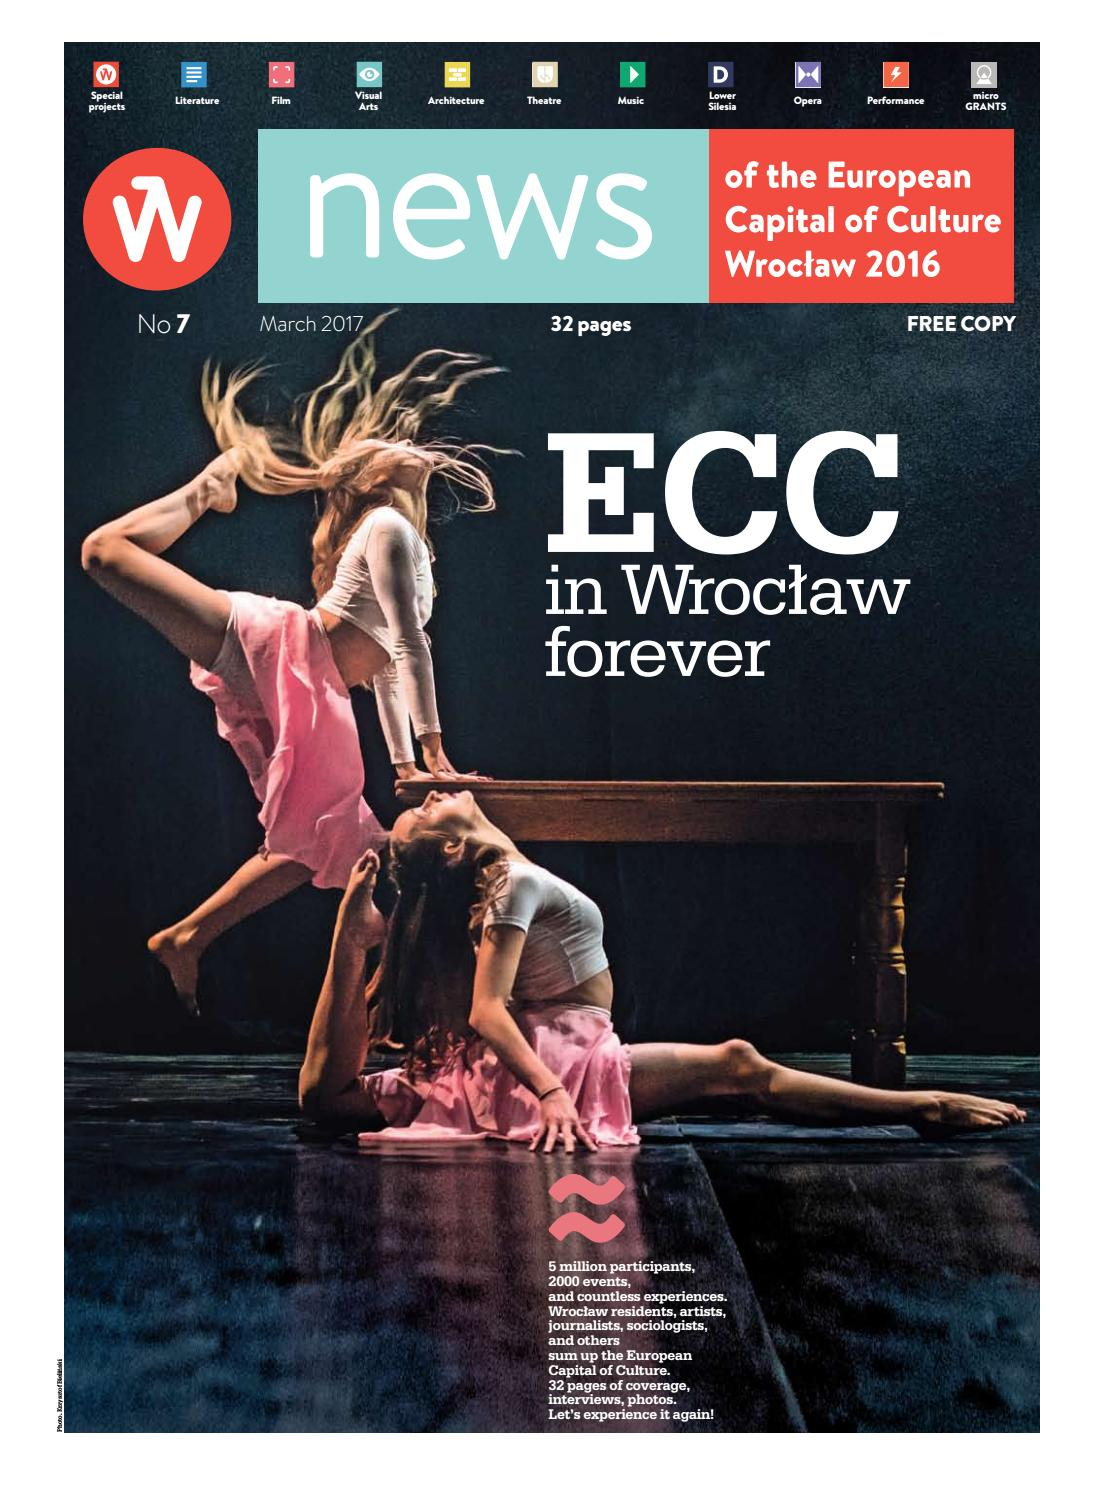 News Of Ecc Wroclaw 2016 No 7 By Wrocław 2016 Issuu